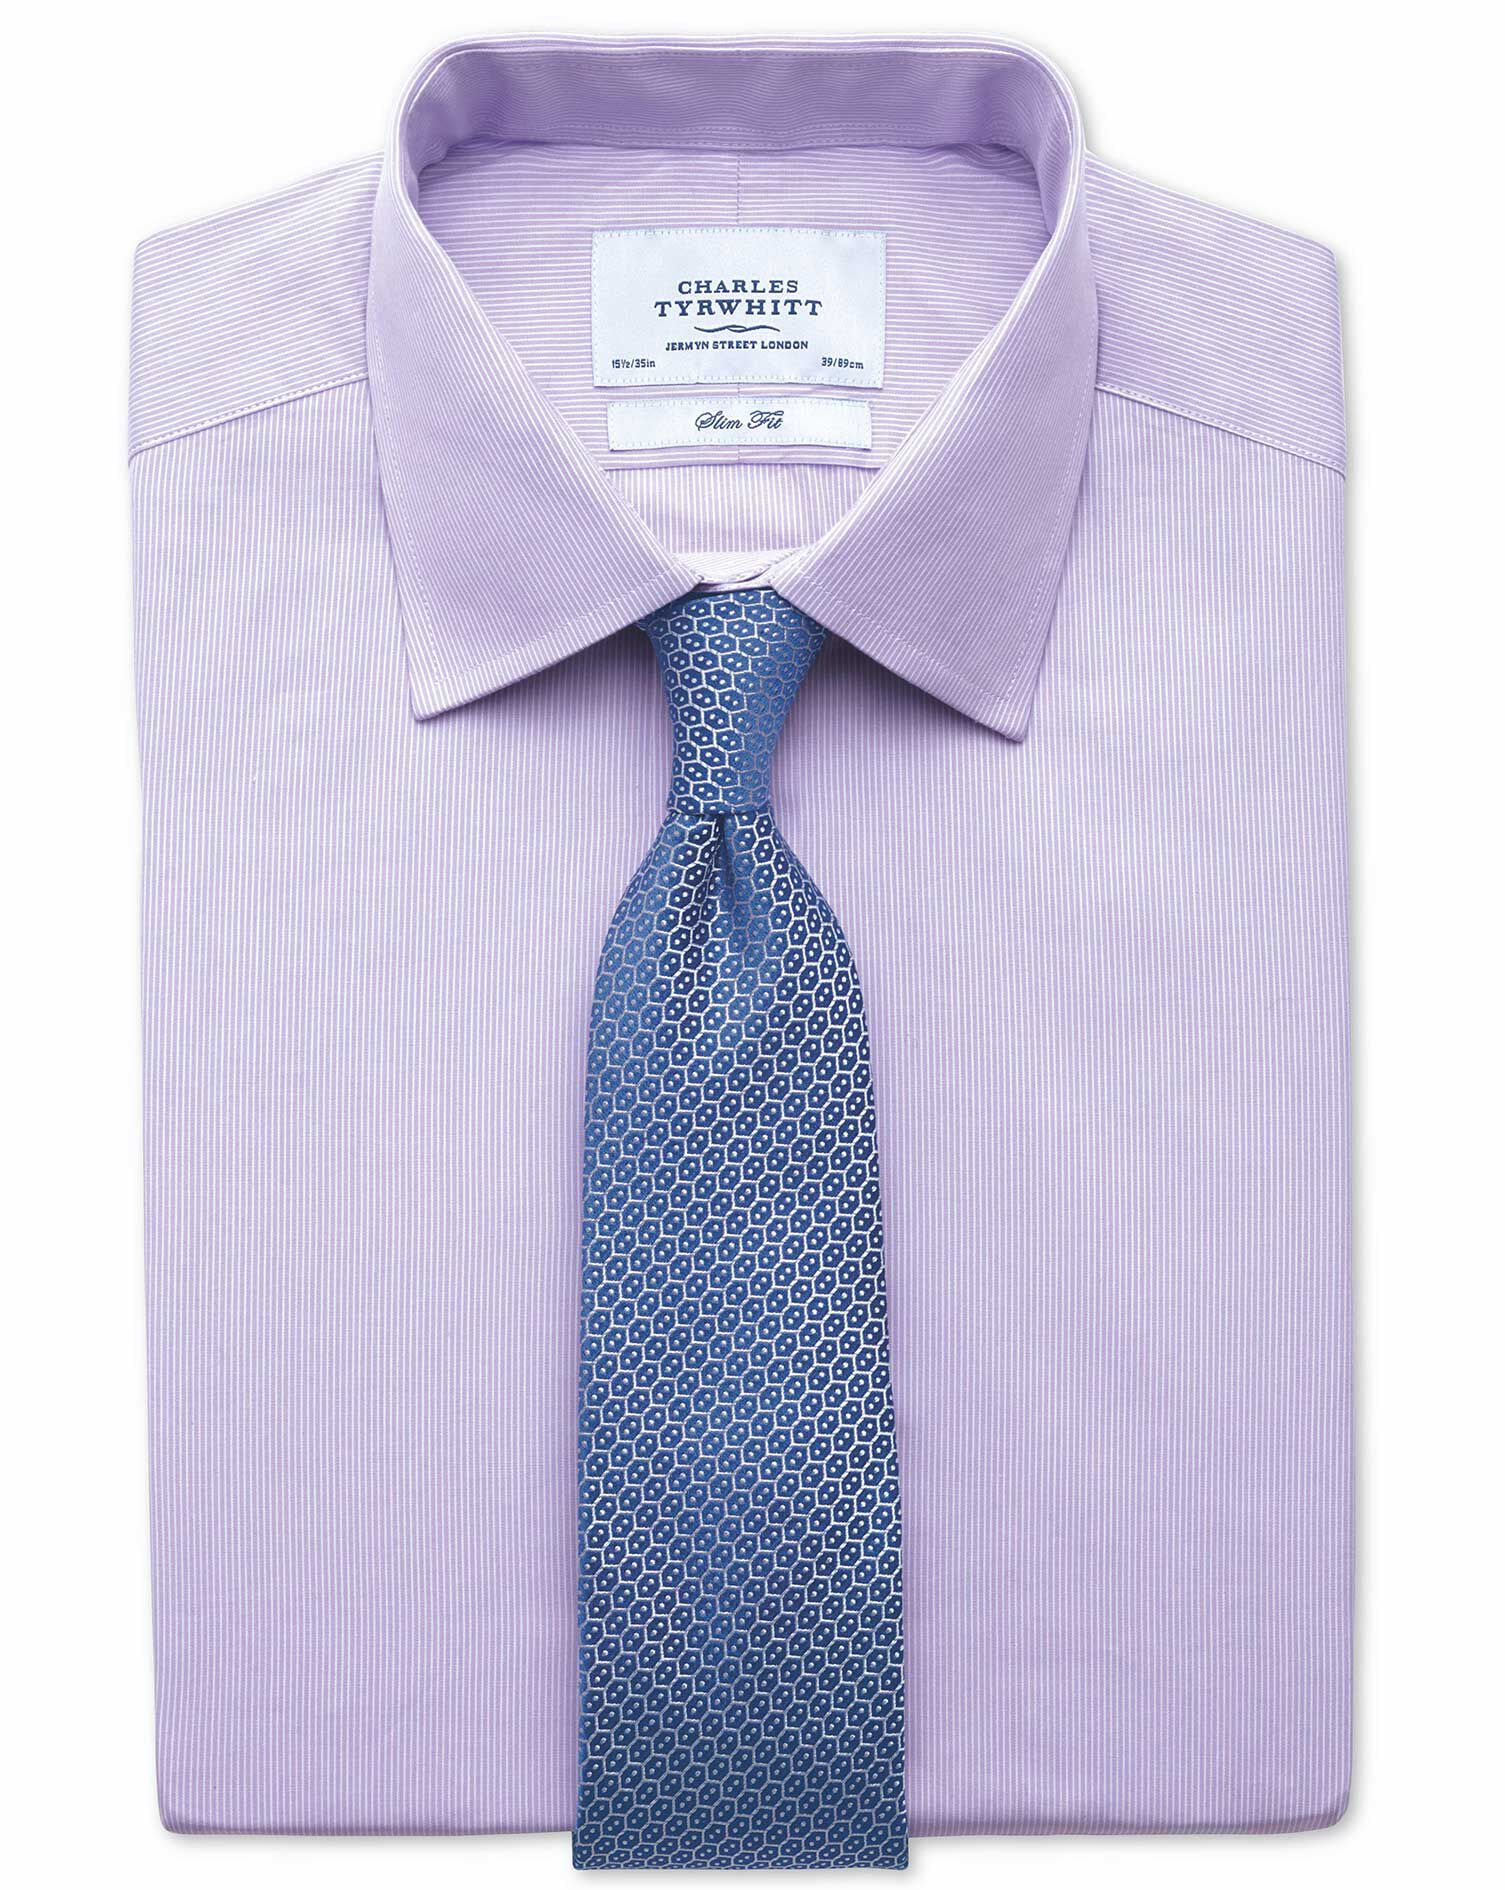 Slim Fit Fine Stripe Lilac Cotton Formal Shirt Double Cuff Size 16.5/35 by Charles Tyrwhitt